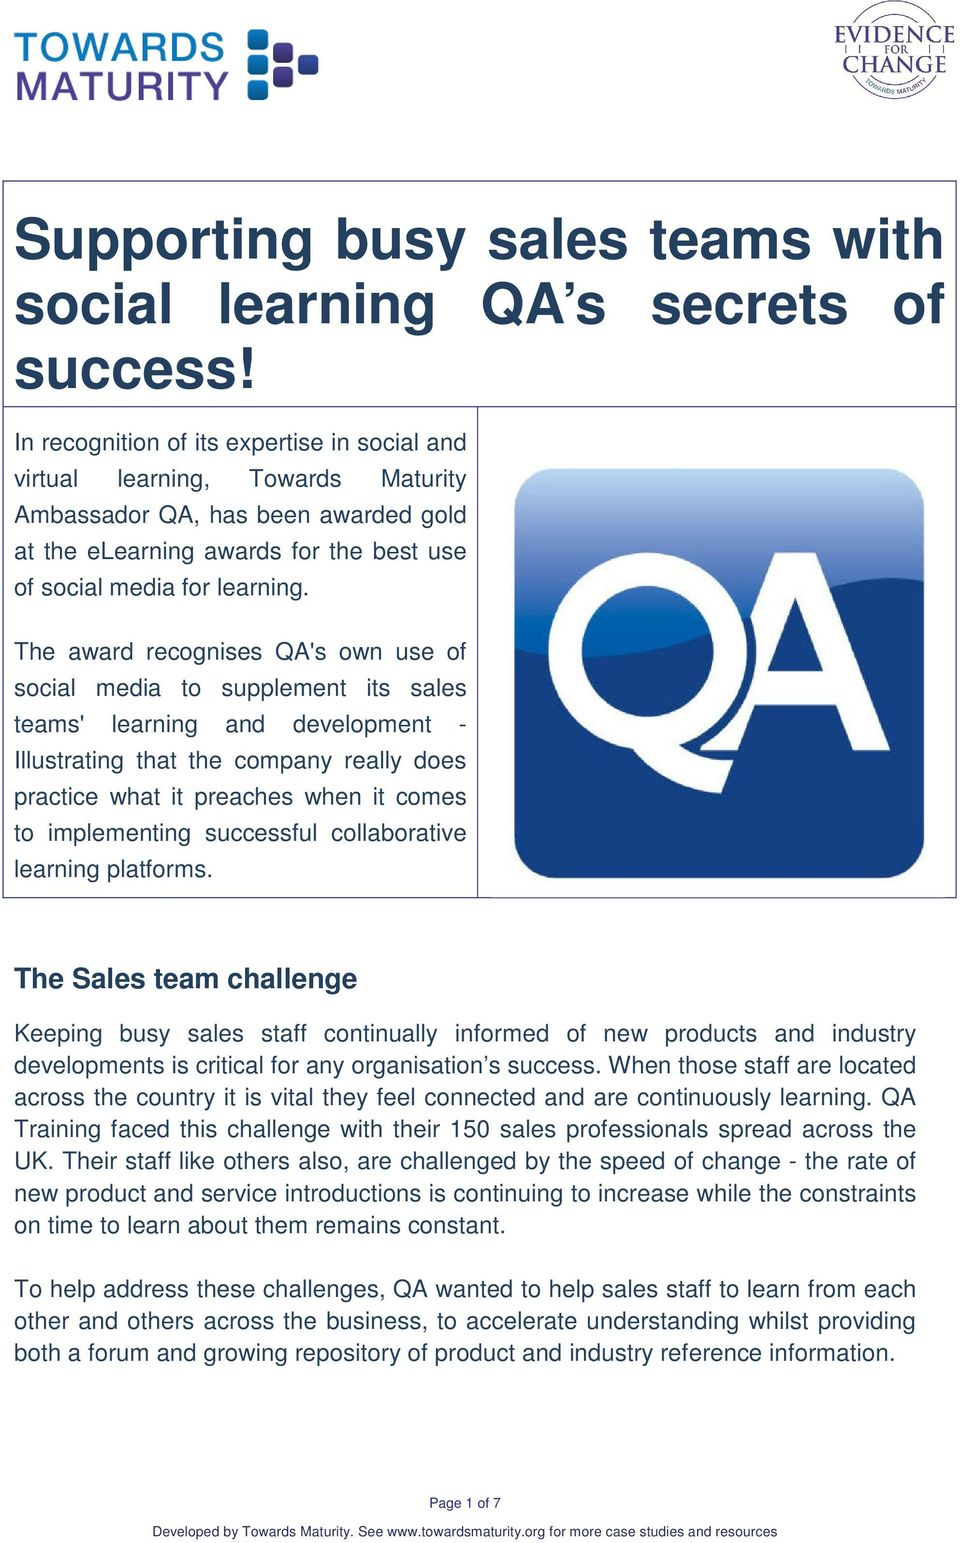 The award recognises QA's own use of social media to supplement its sales teams' learning and development - Illustrating that the company really does practice what it preaches when it comes to